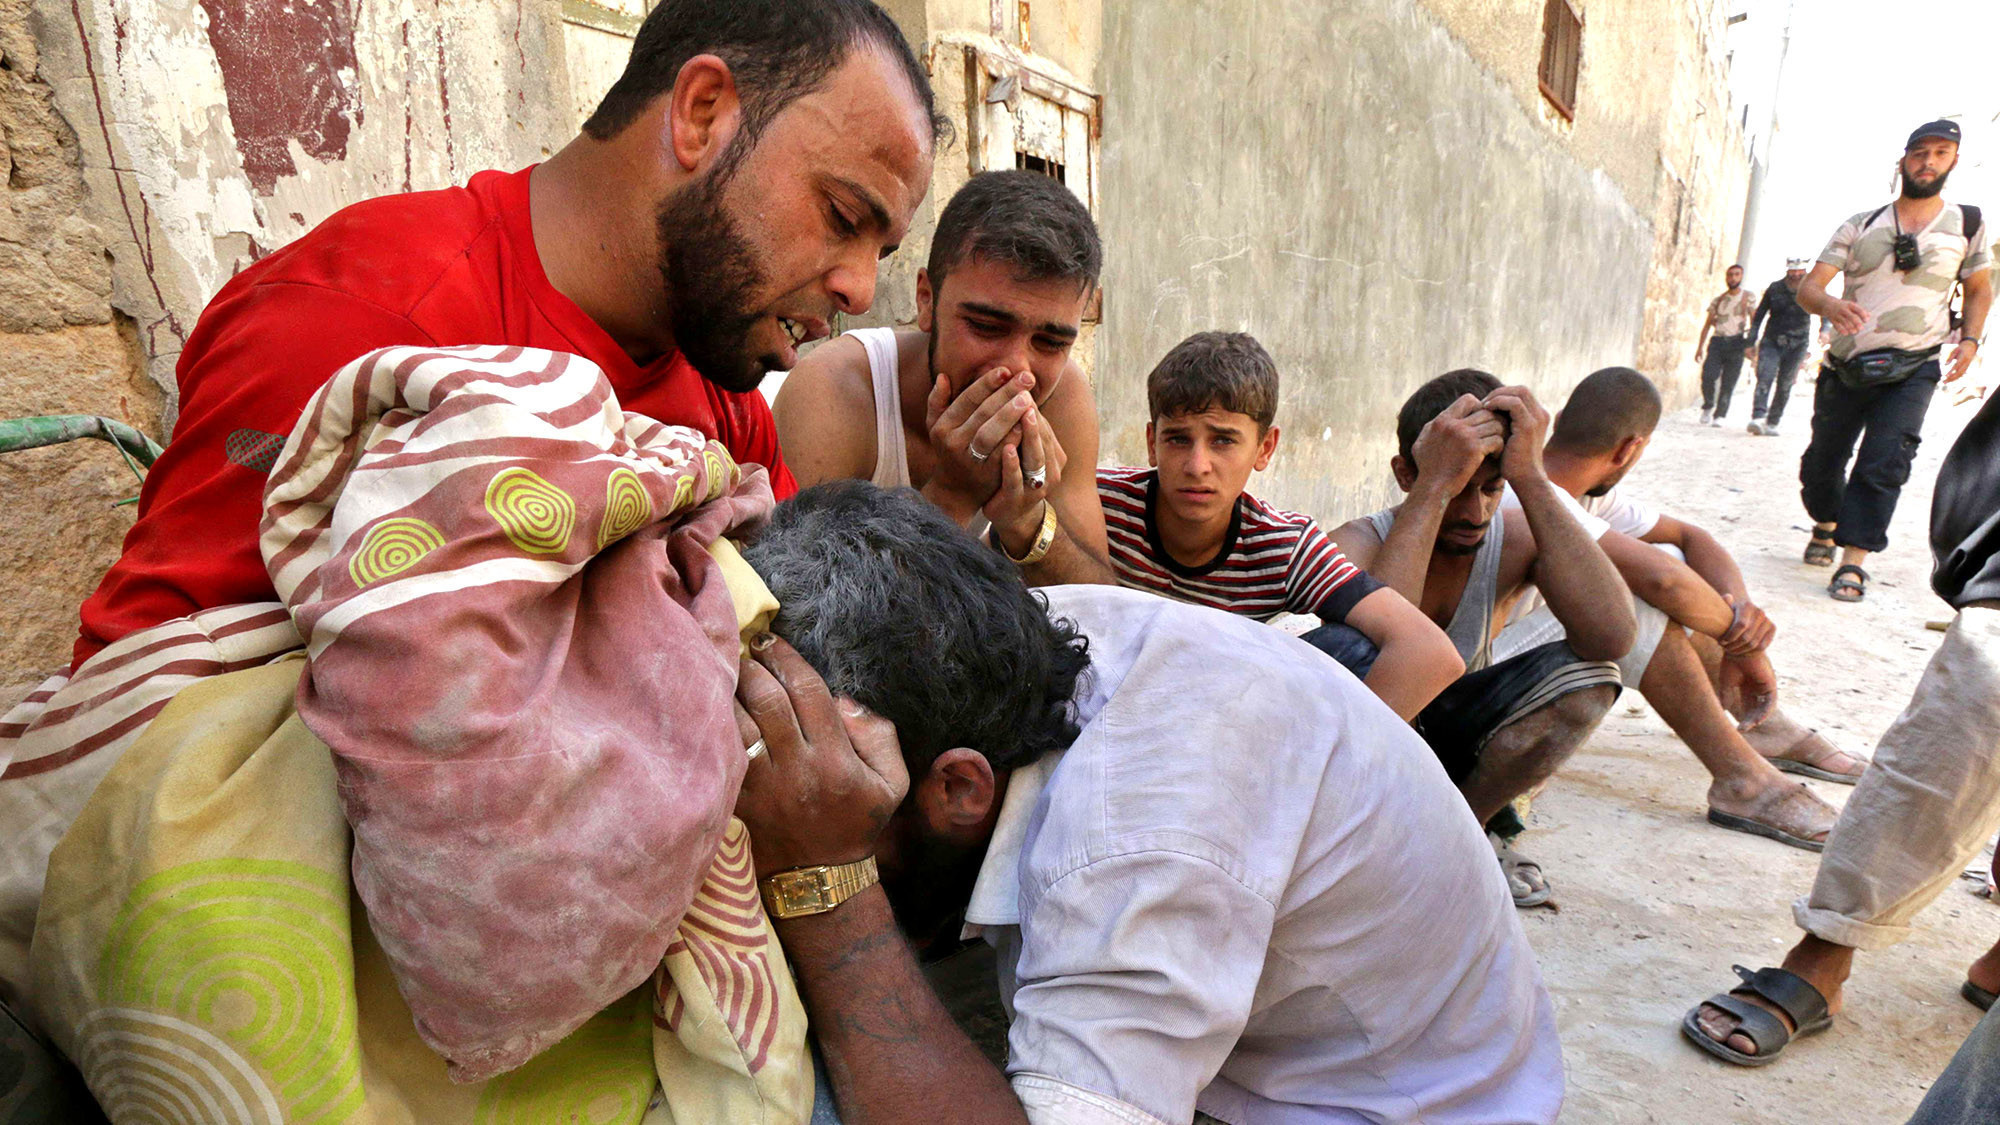 More and more children join Syrian rebels' desperate ranks